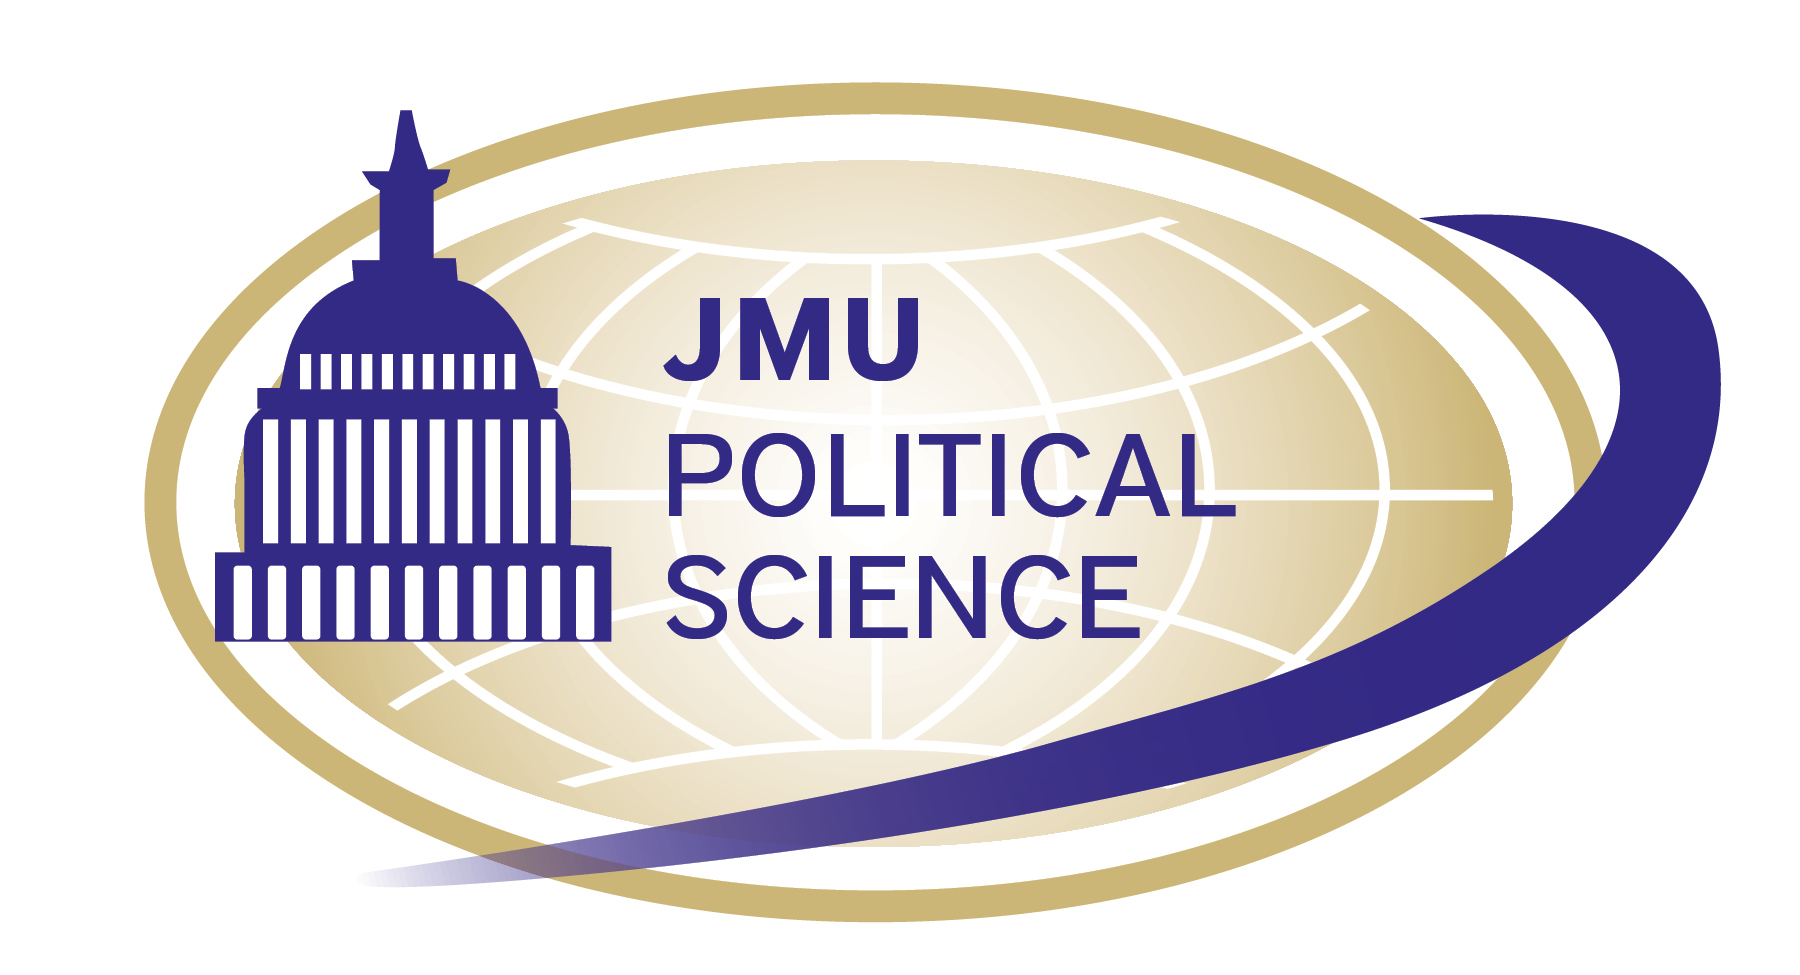 JMU Political Science Logo